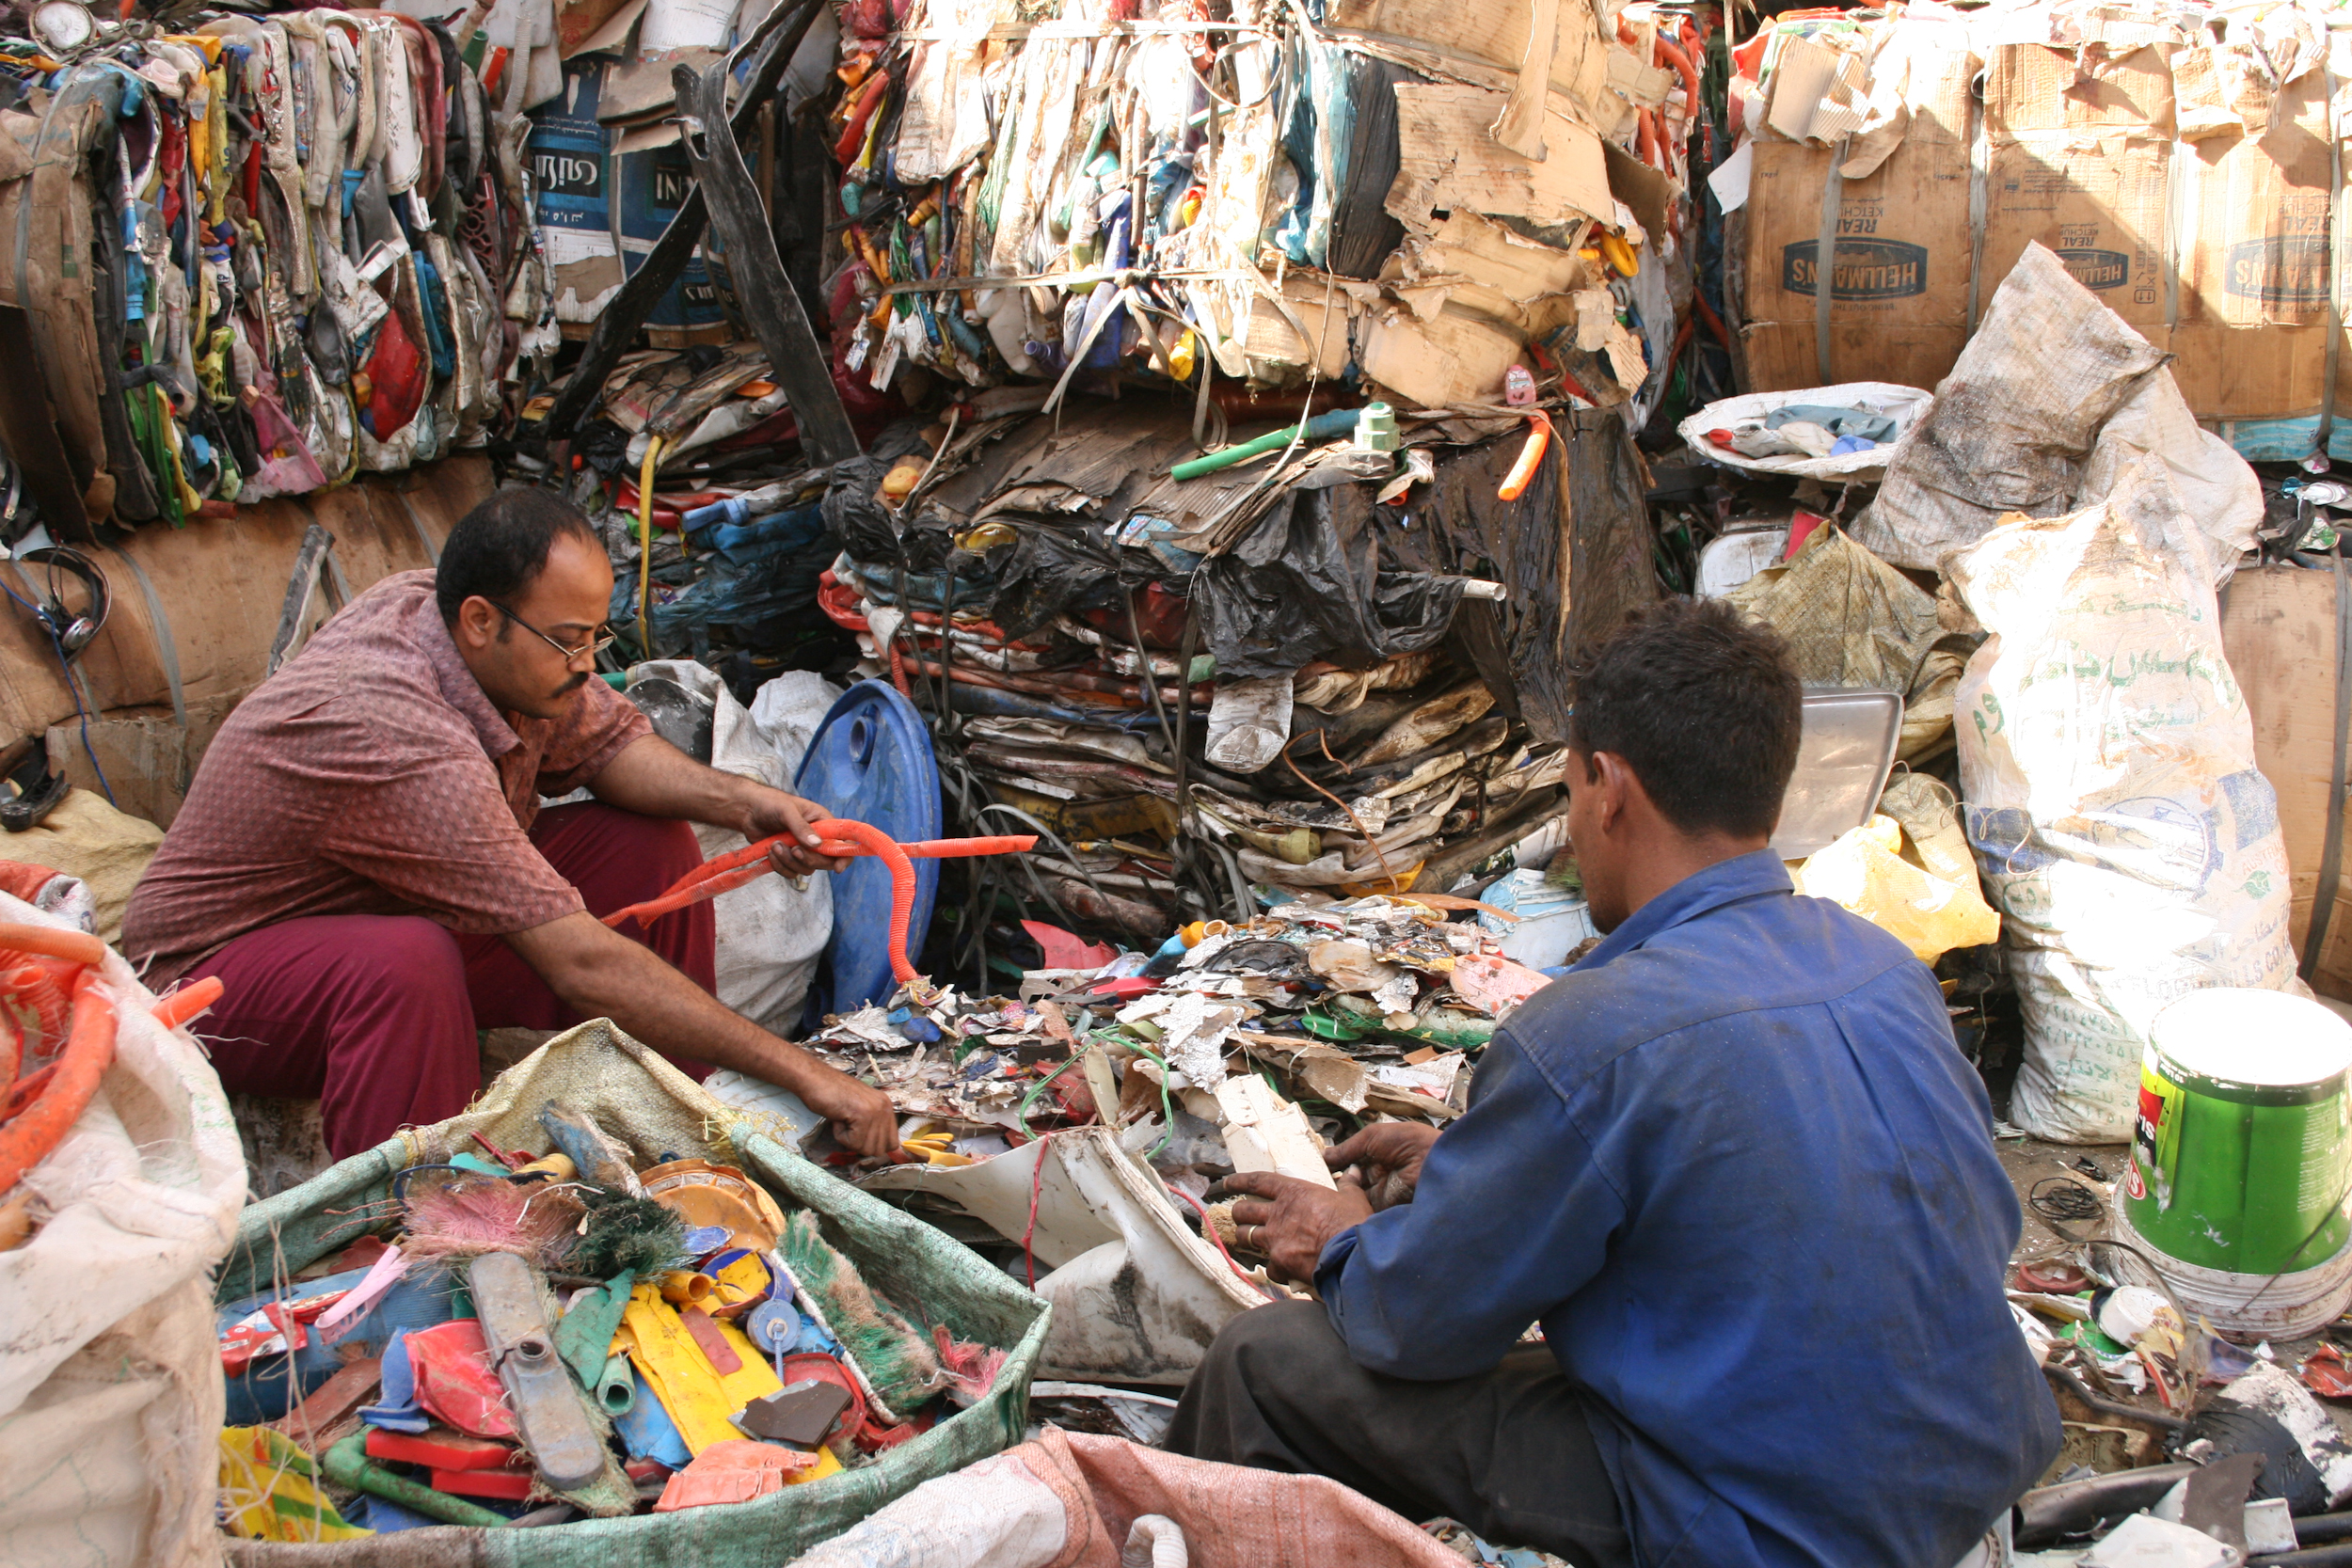 A Value Chain Analysis tool for informal recyclers